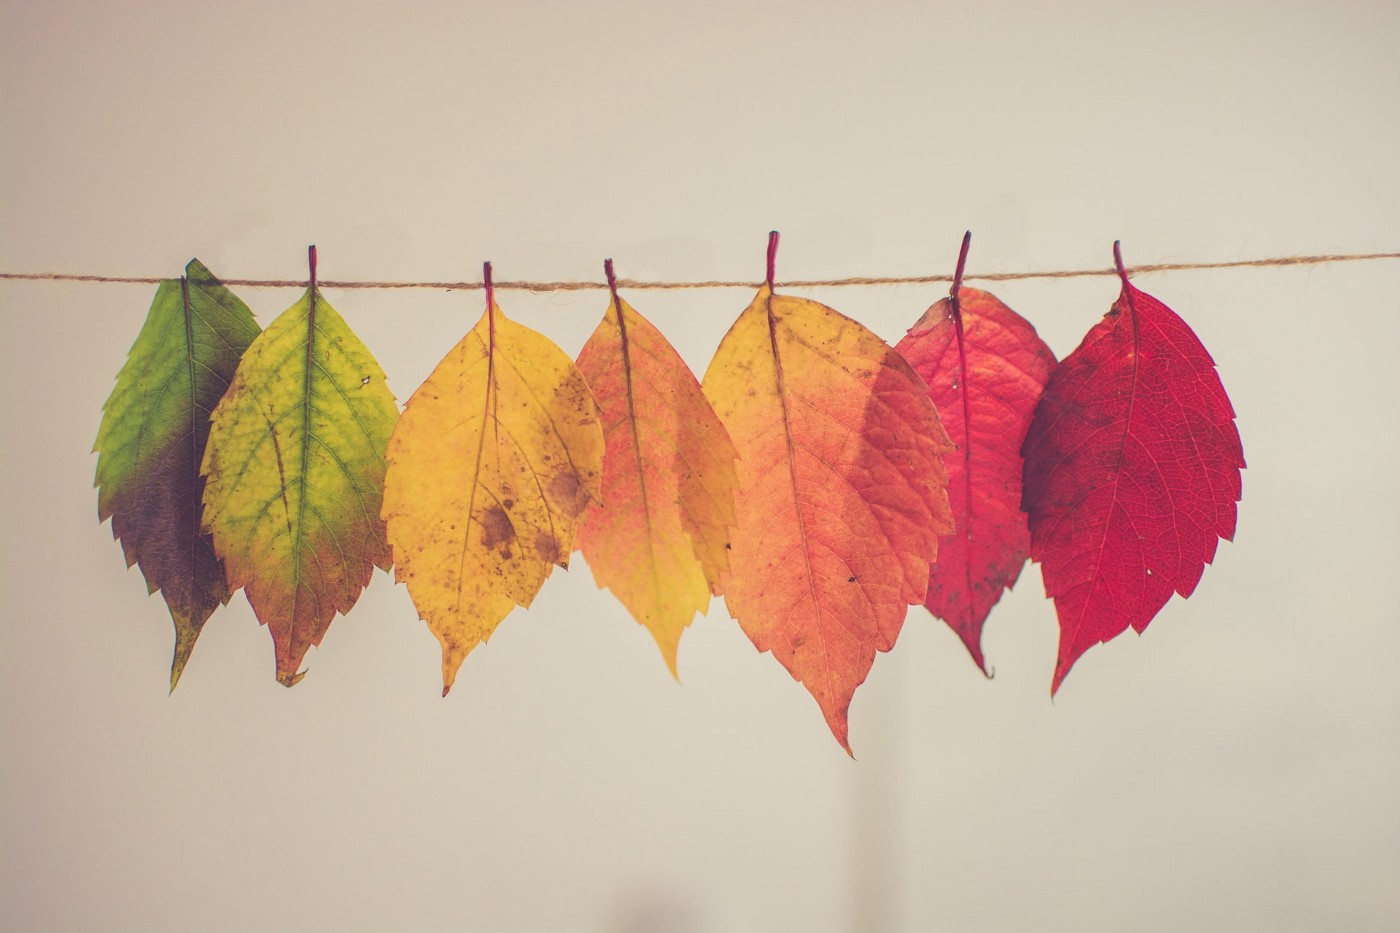 Leaves on a string with different colors due to change of season